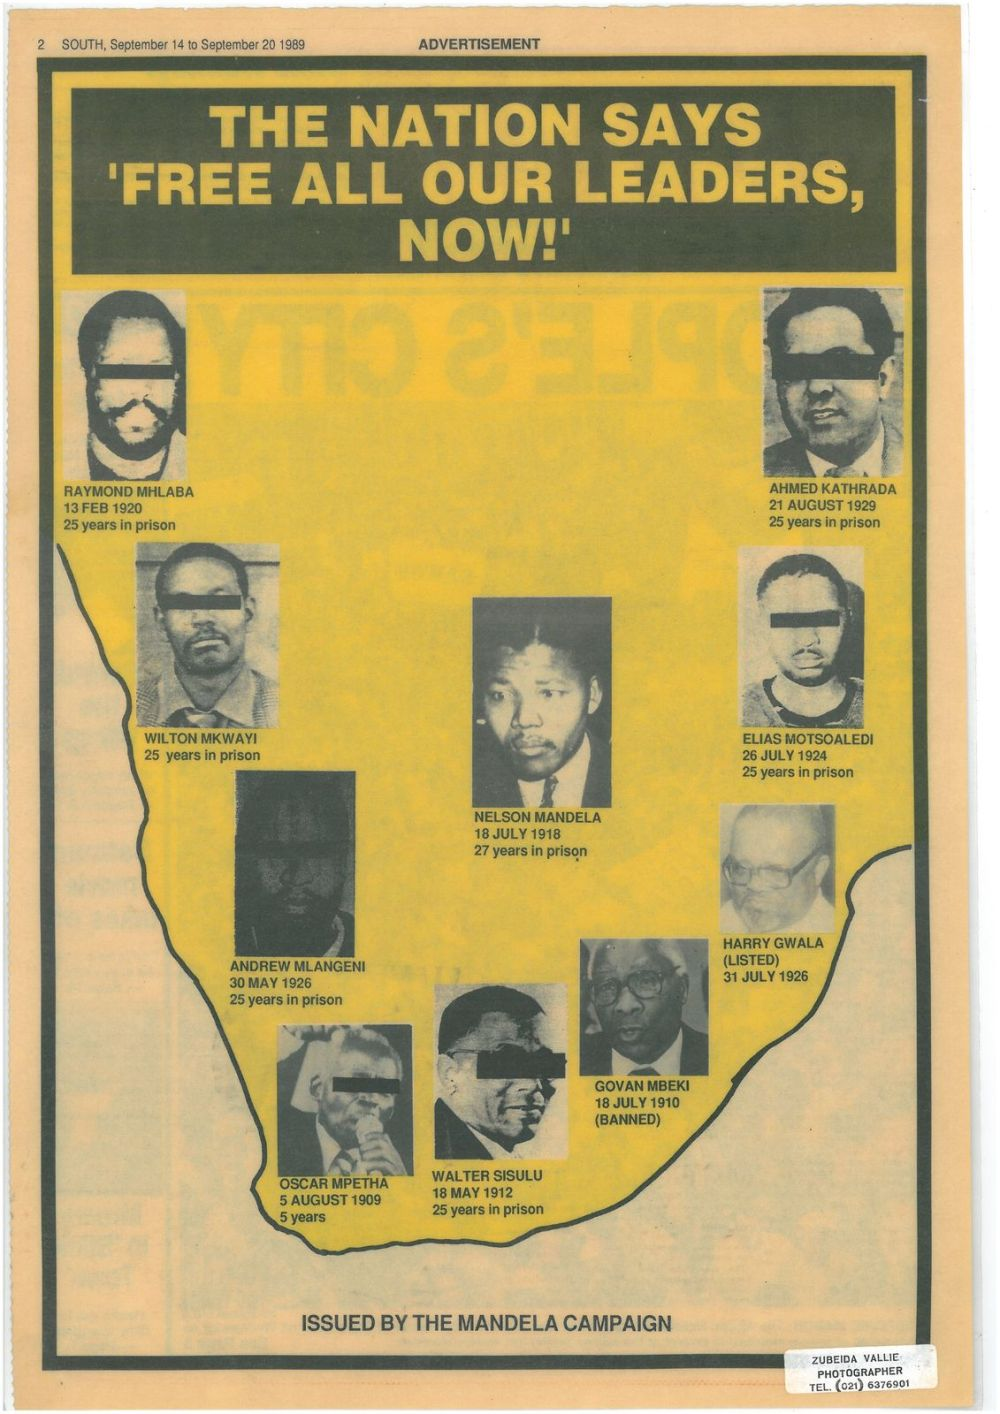 Campaigns to free Nelson Mandela were widespread. This was issued by an anti-apartheid newspaper at the time